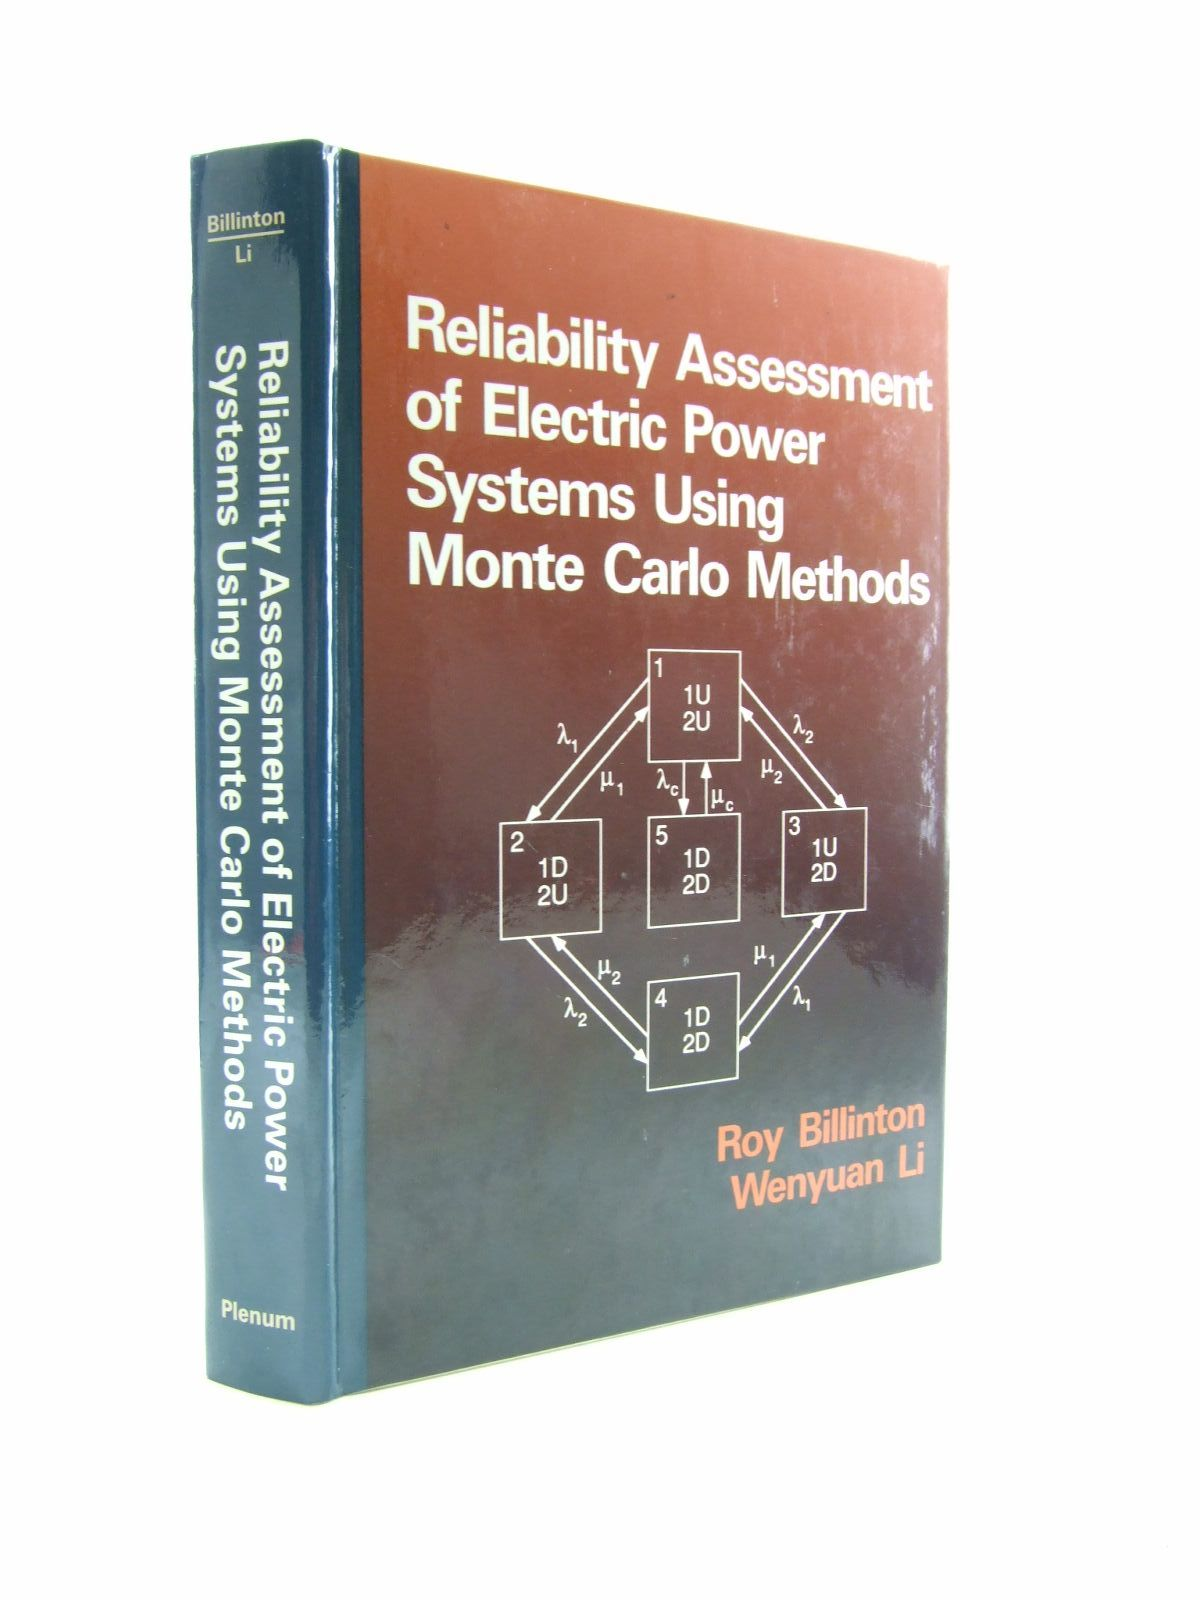 Photo of RELIABILITY ASSESSMENT OF ELECTRIC POWER SYSTEMS USING MONTE CARLO METHODS written by Billinton, Roy Li, Wenyuan published by Plenum (STOCK CODE: 1207433)  for sale by Stella & Rose's Books